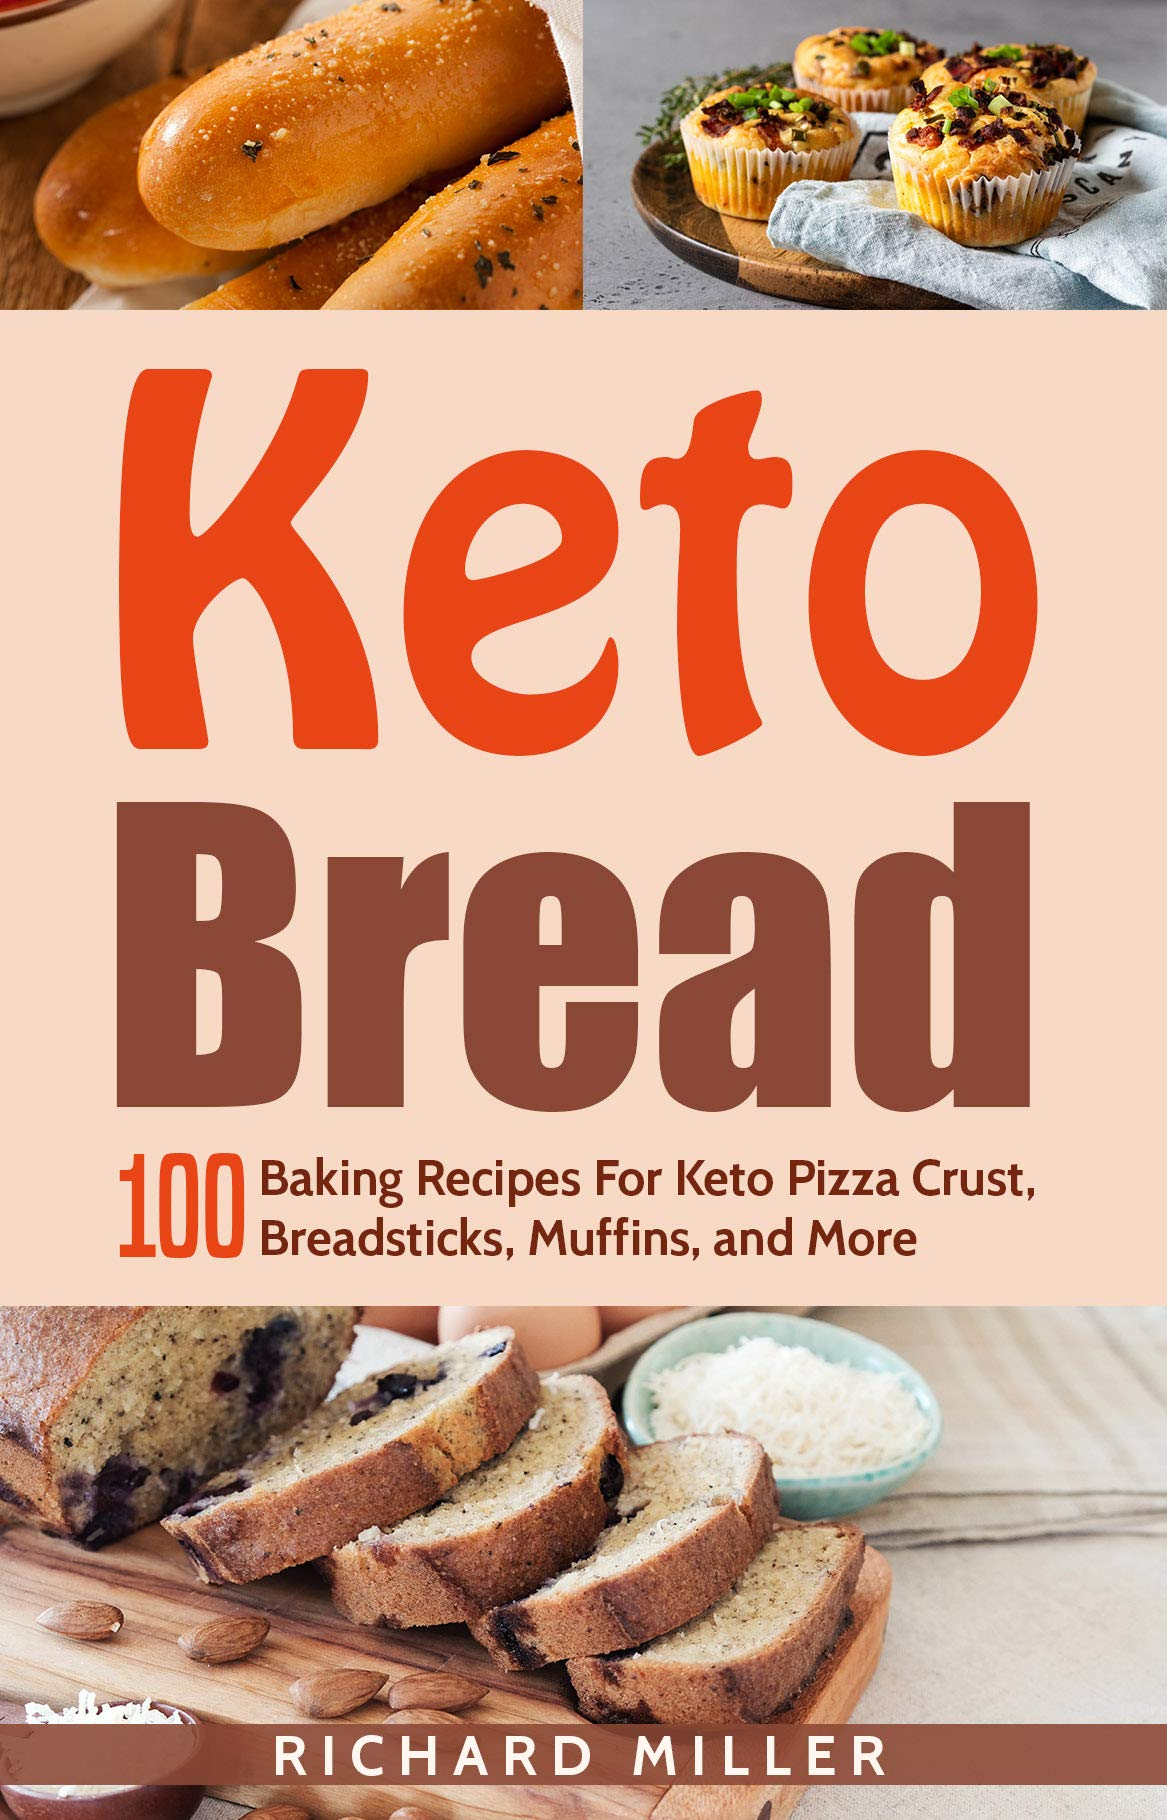 Keto Bread  100 Baking Recipes For Keto Pizza Crust Breadsticks Muffins And More  English Edition